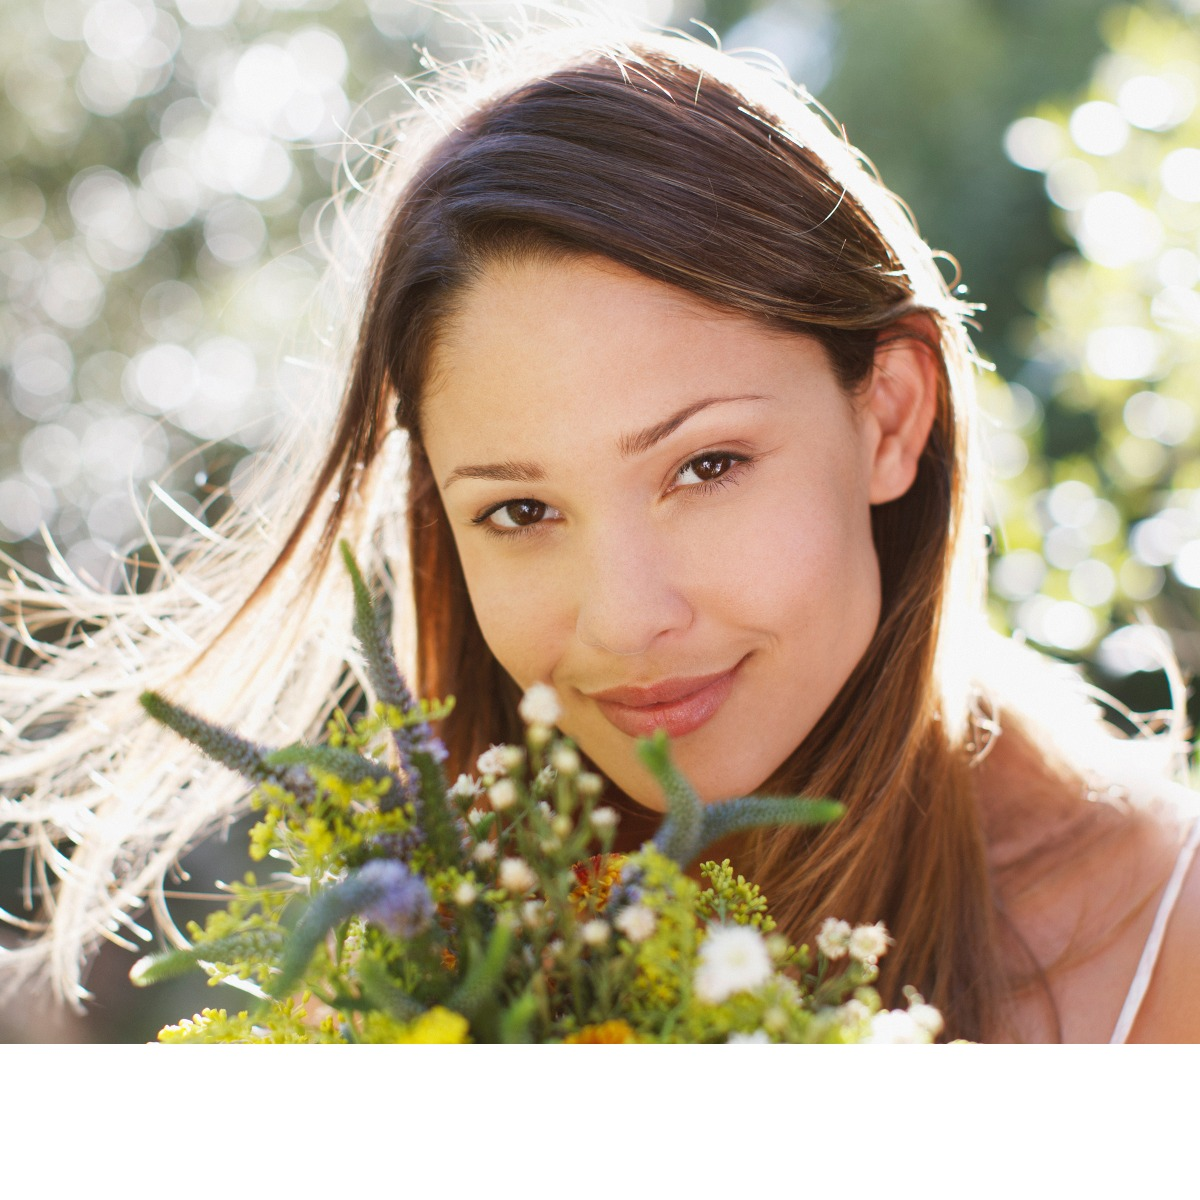 5 tips for your skin care in spring - Read now!